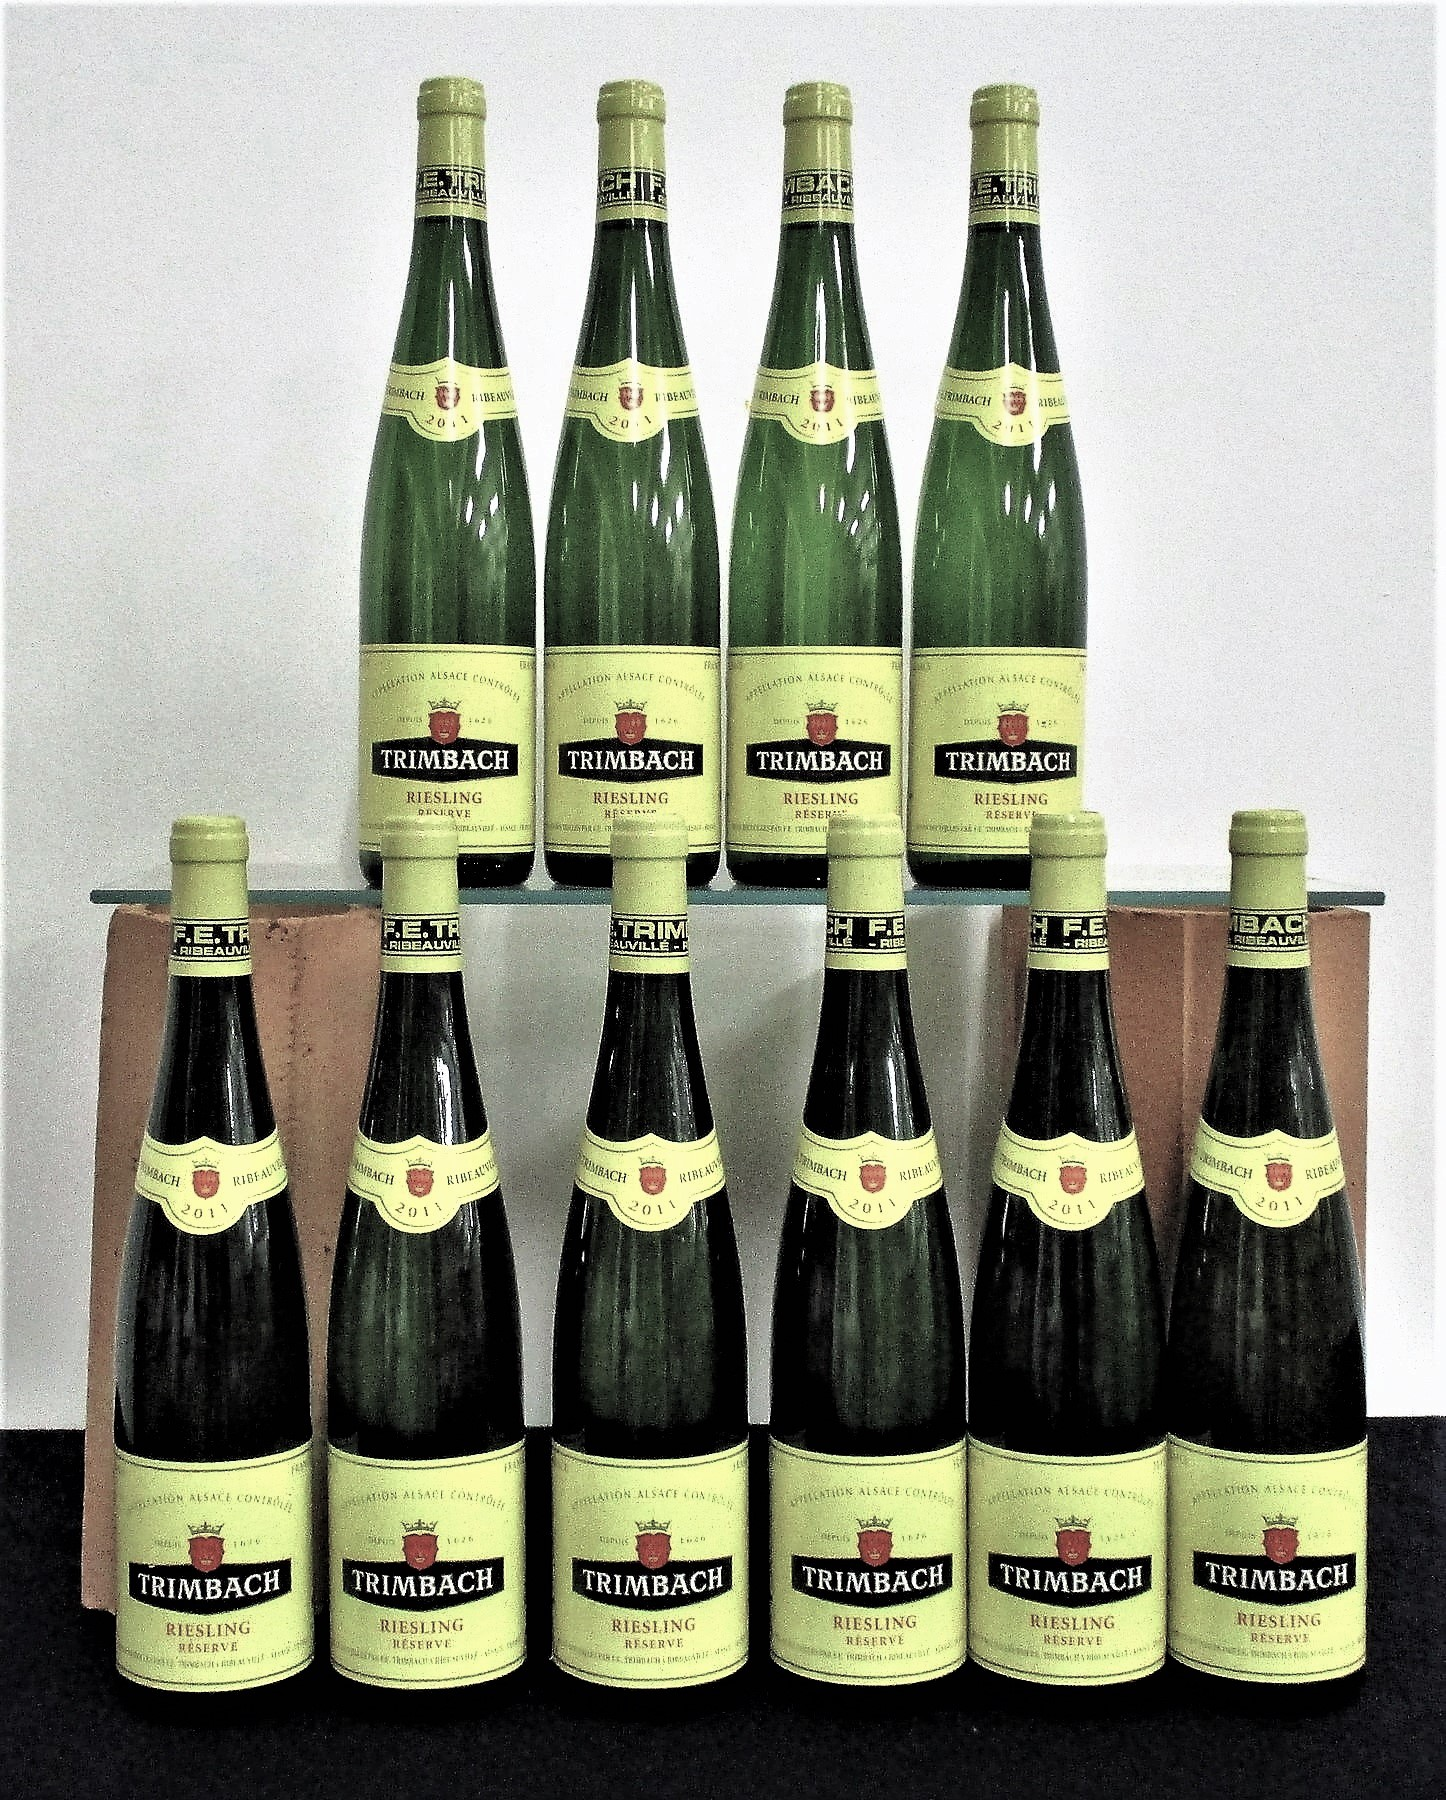 10 bts Trimbach Riesling Reserve 2011